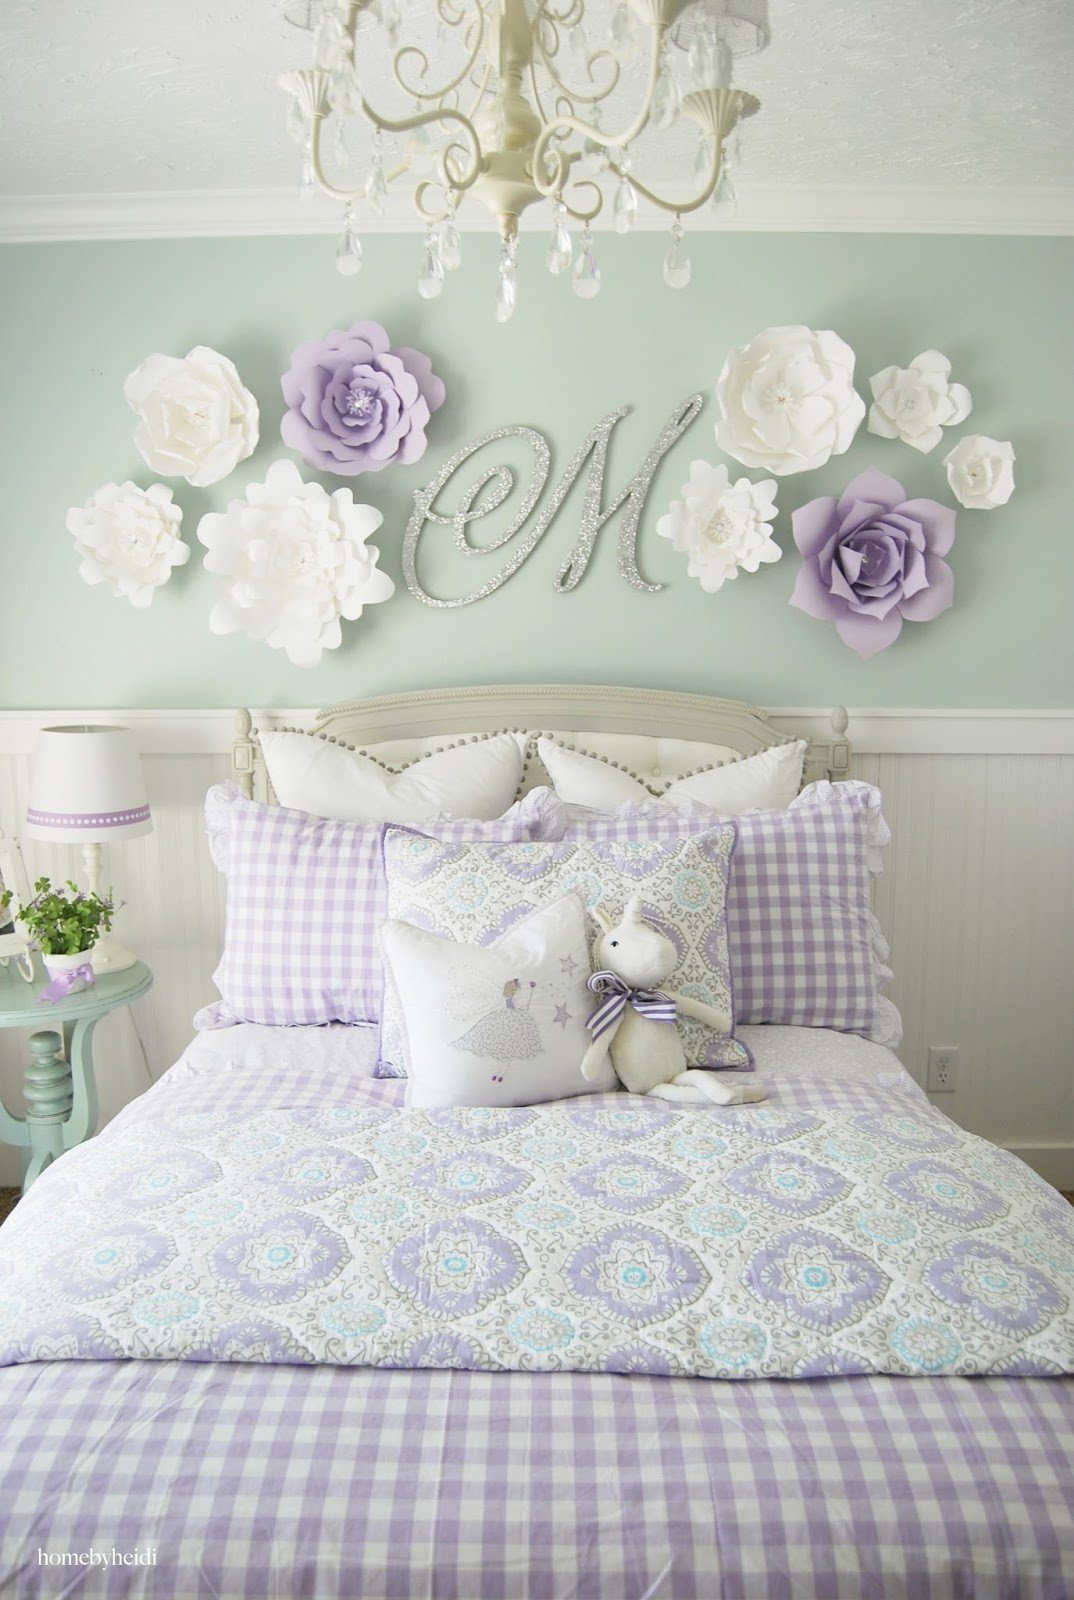 Room Decor Ideas for Girls Unique Home by Heidi Purple & Turquoise Little Girls Room